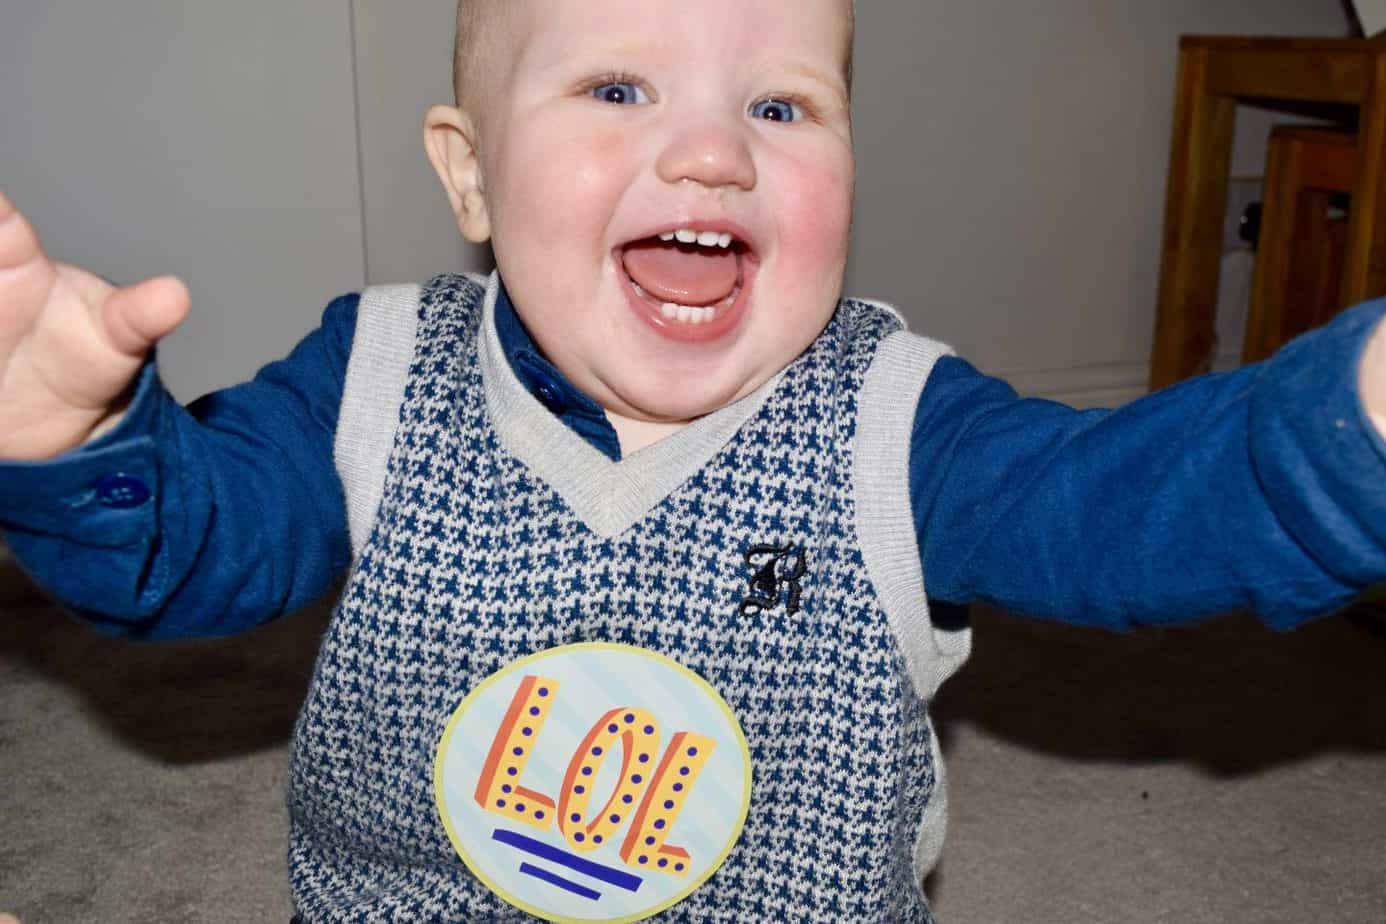 Baby K smiling at the camera with a LOL sticker on him